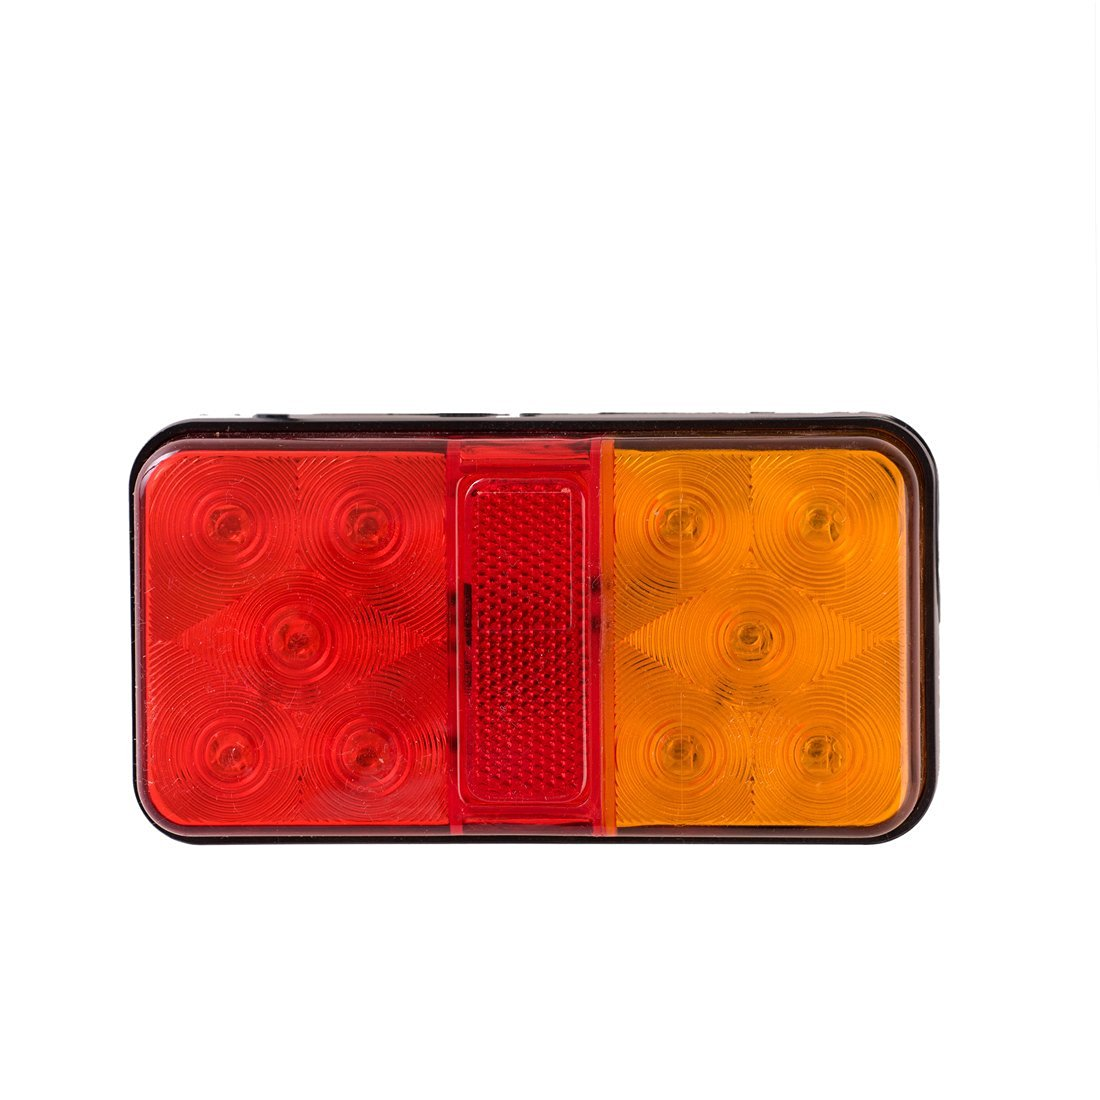 "NAT 2Pcs 5.5"" 2.75"" 1.1"" 5+5 Rear Light Stop Light Tail Light Turn Light Combination Signal Light Lamp with Reflertor (Red & Amber)"